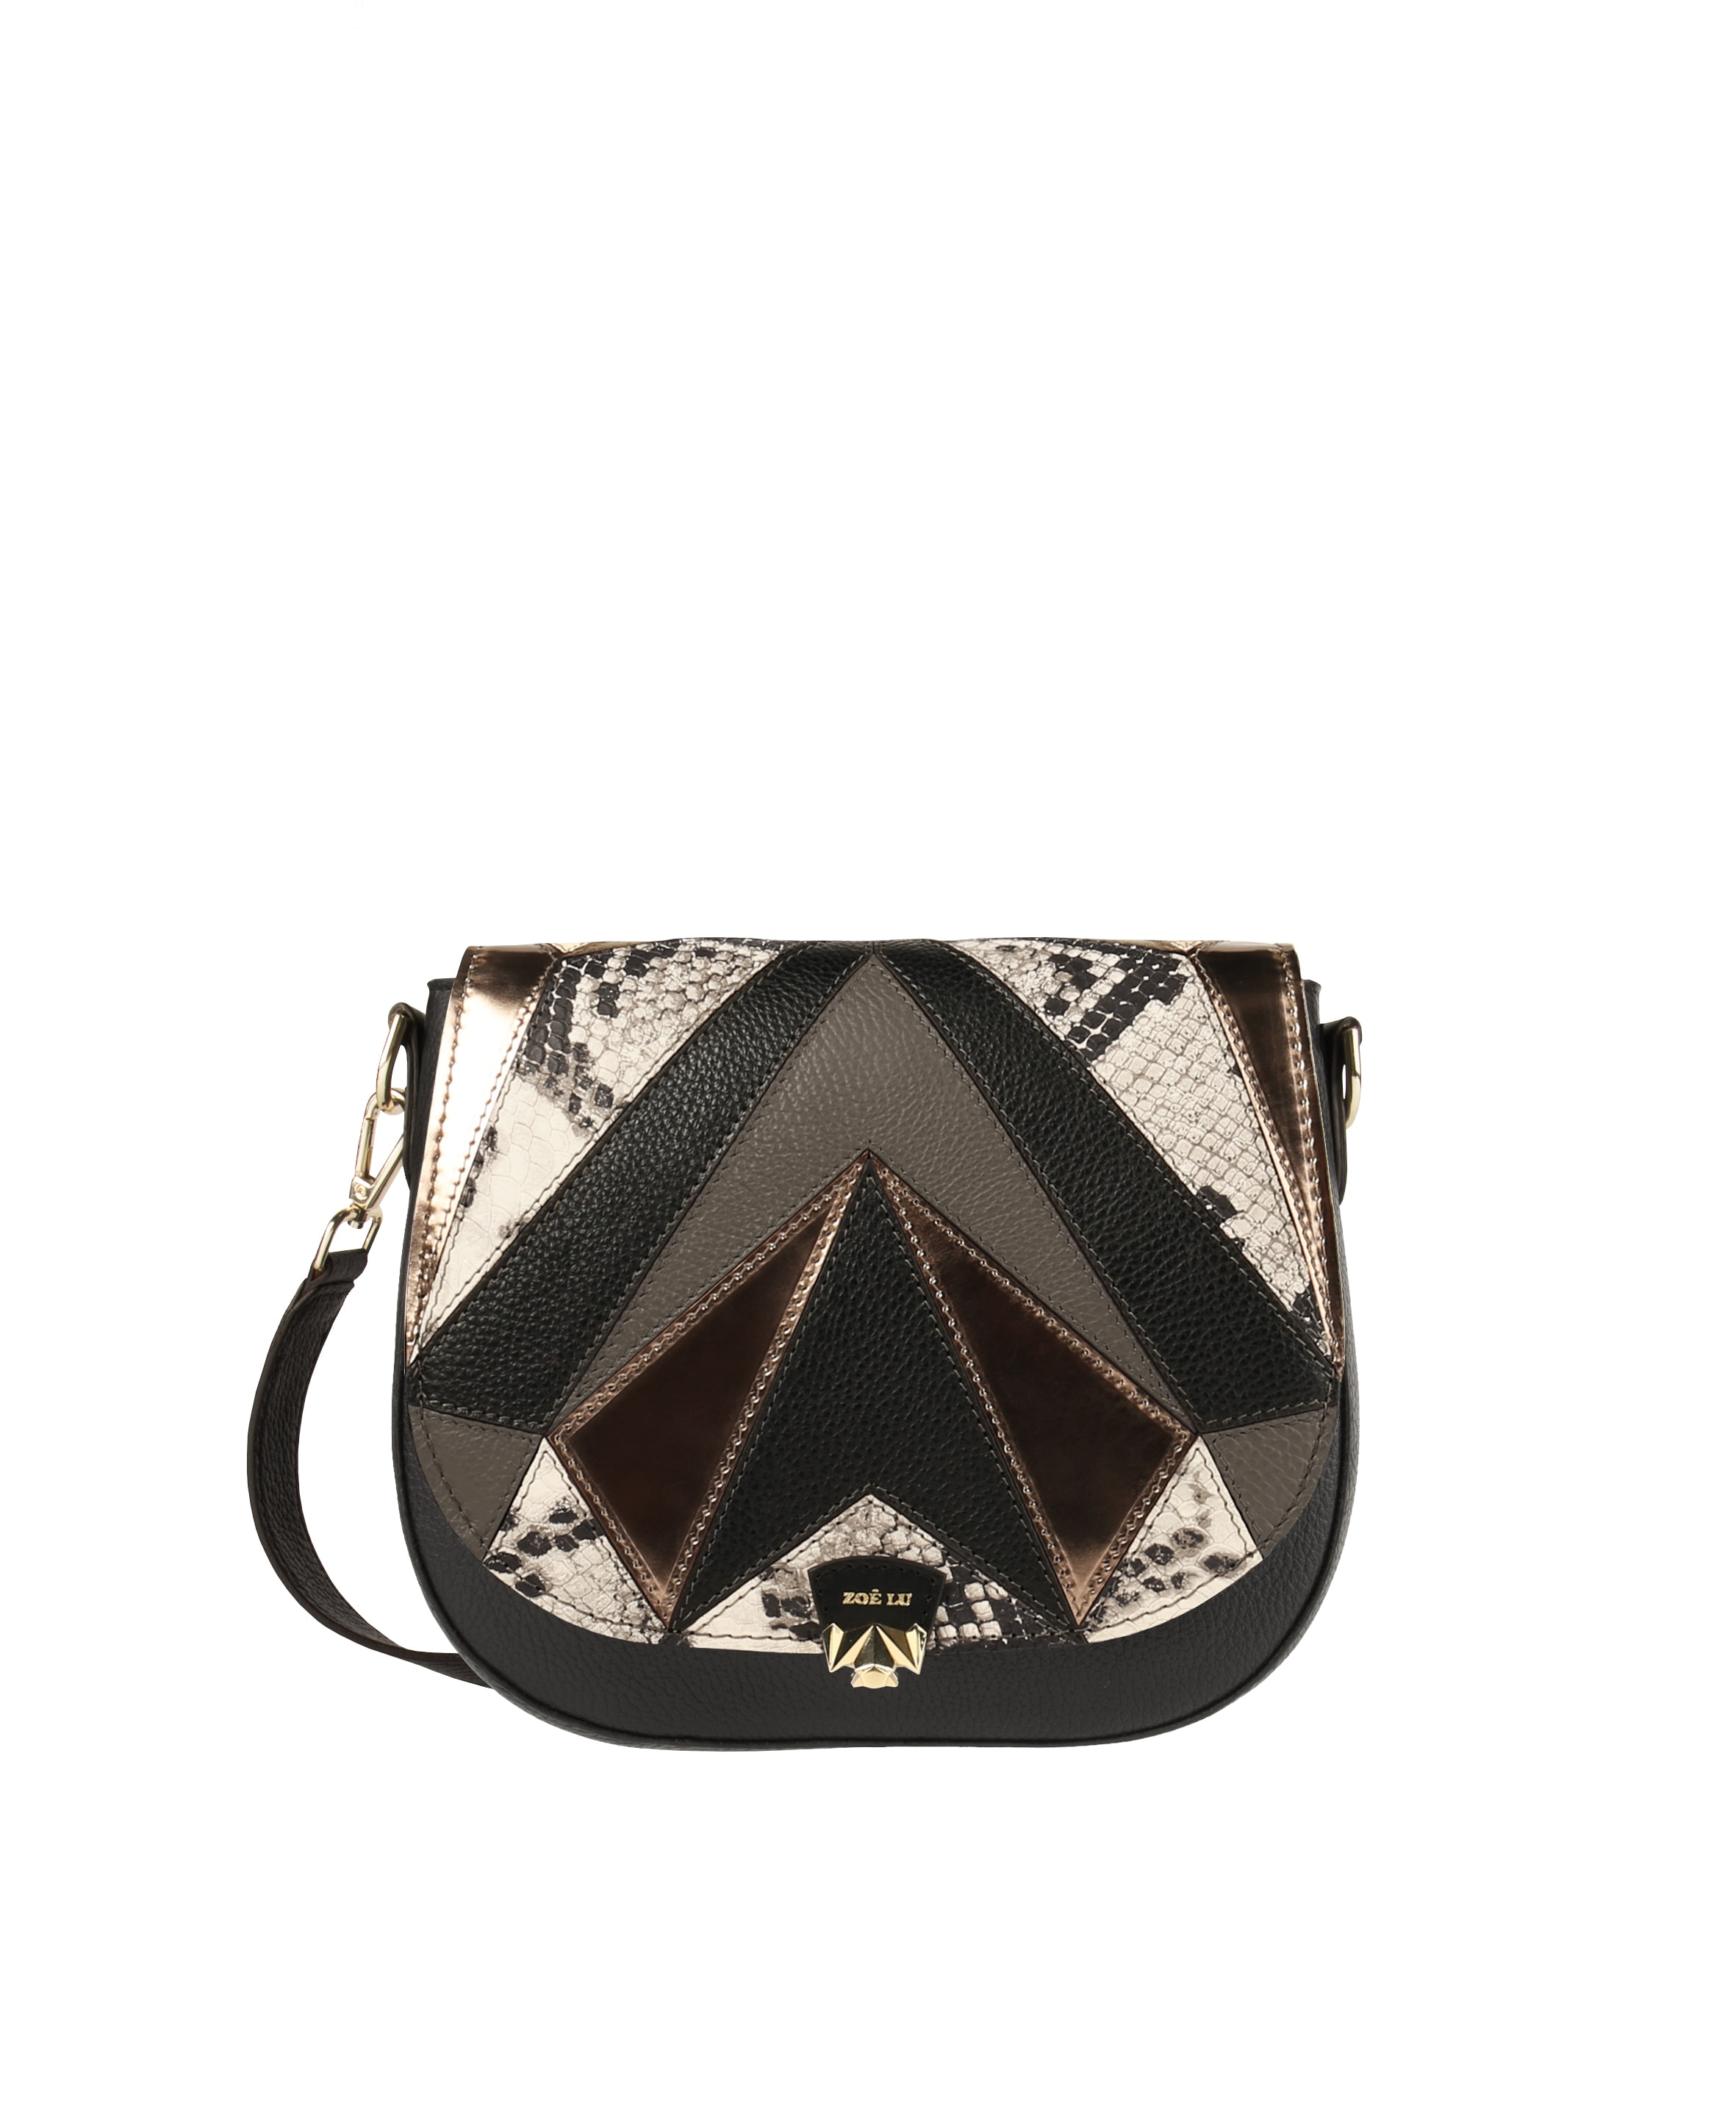 zoe-lu-tasche-freaky-friday-metallic-mix